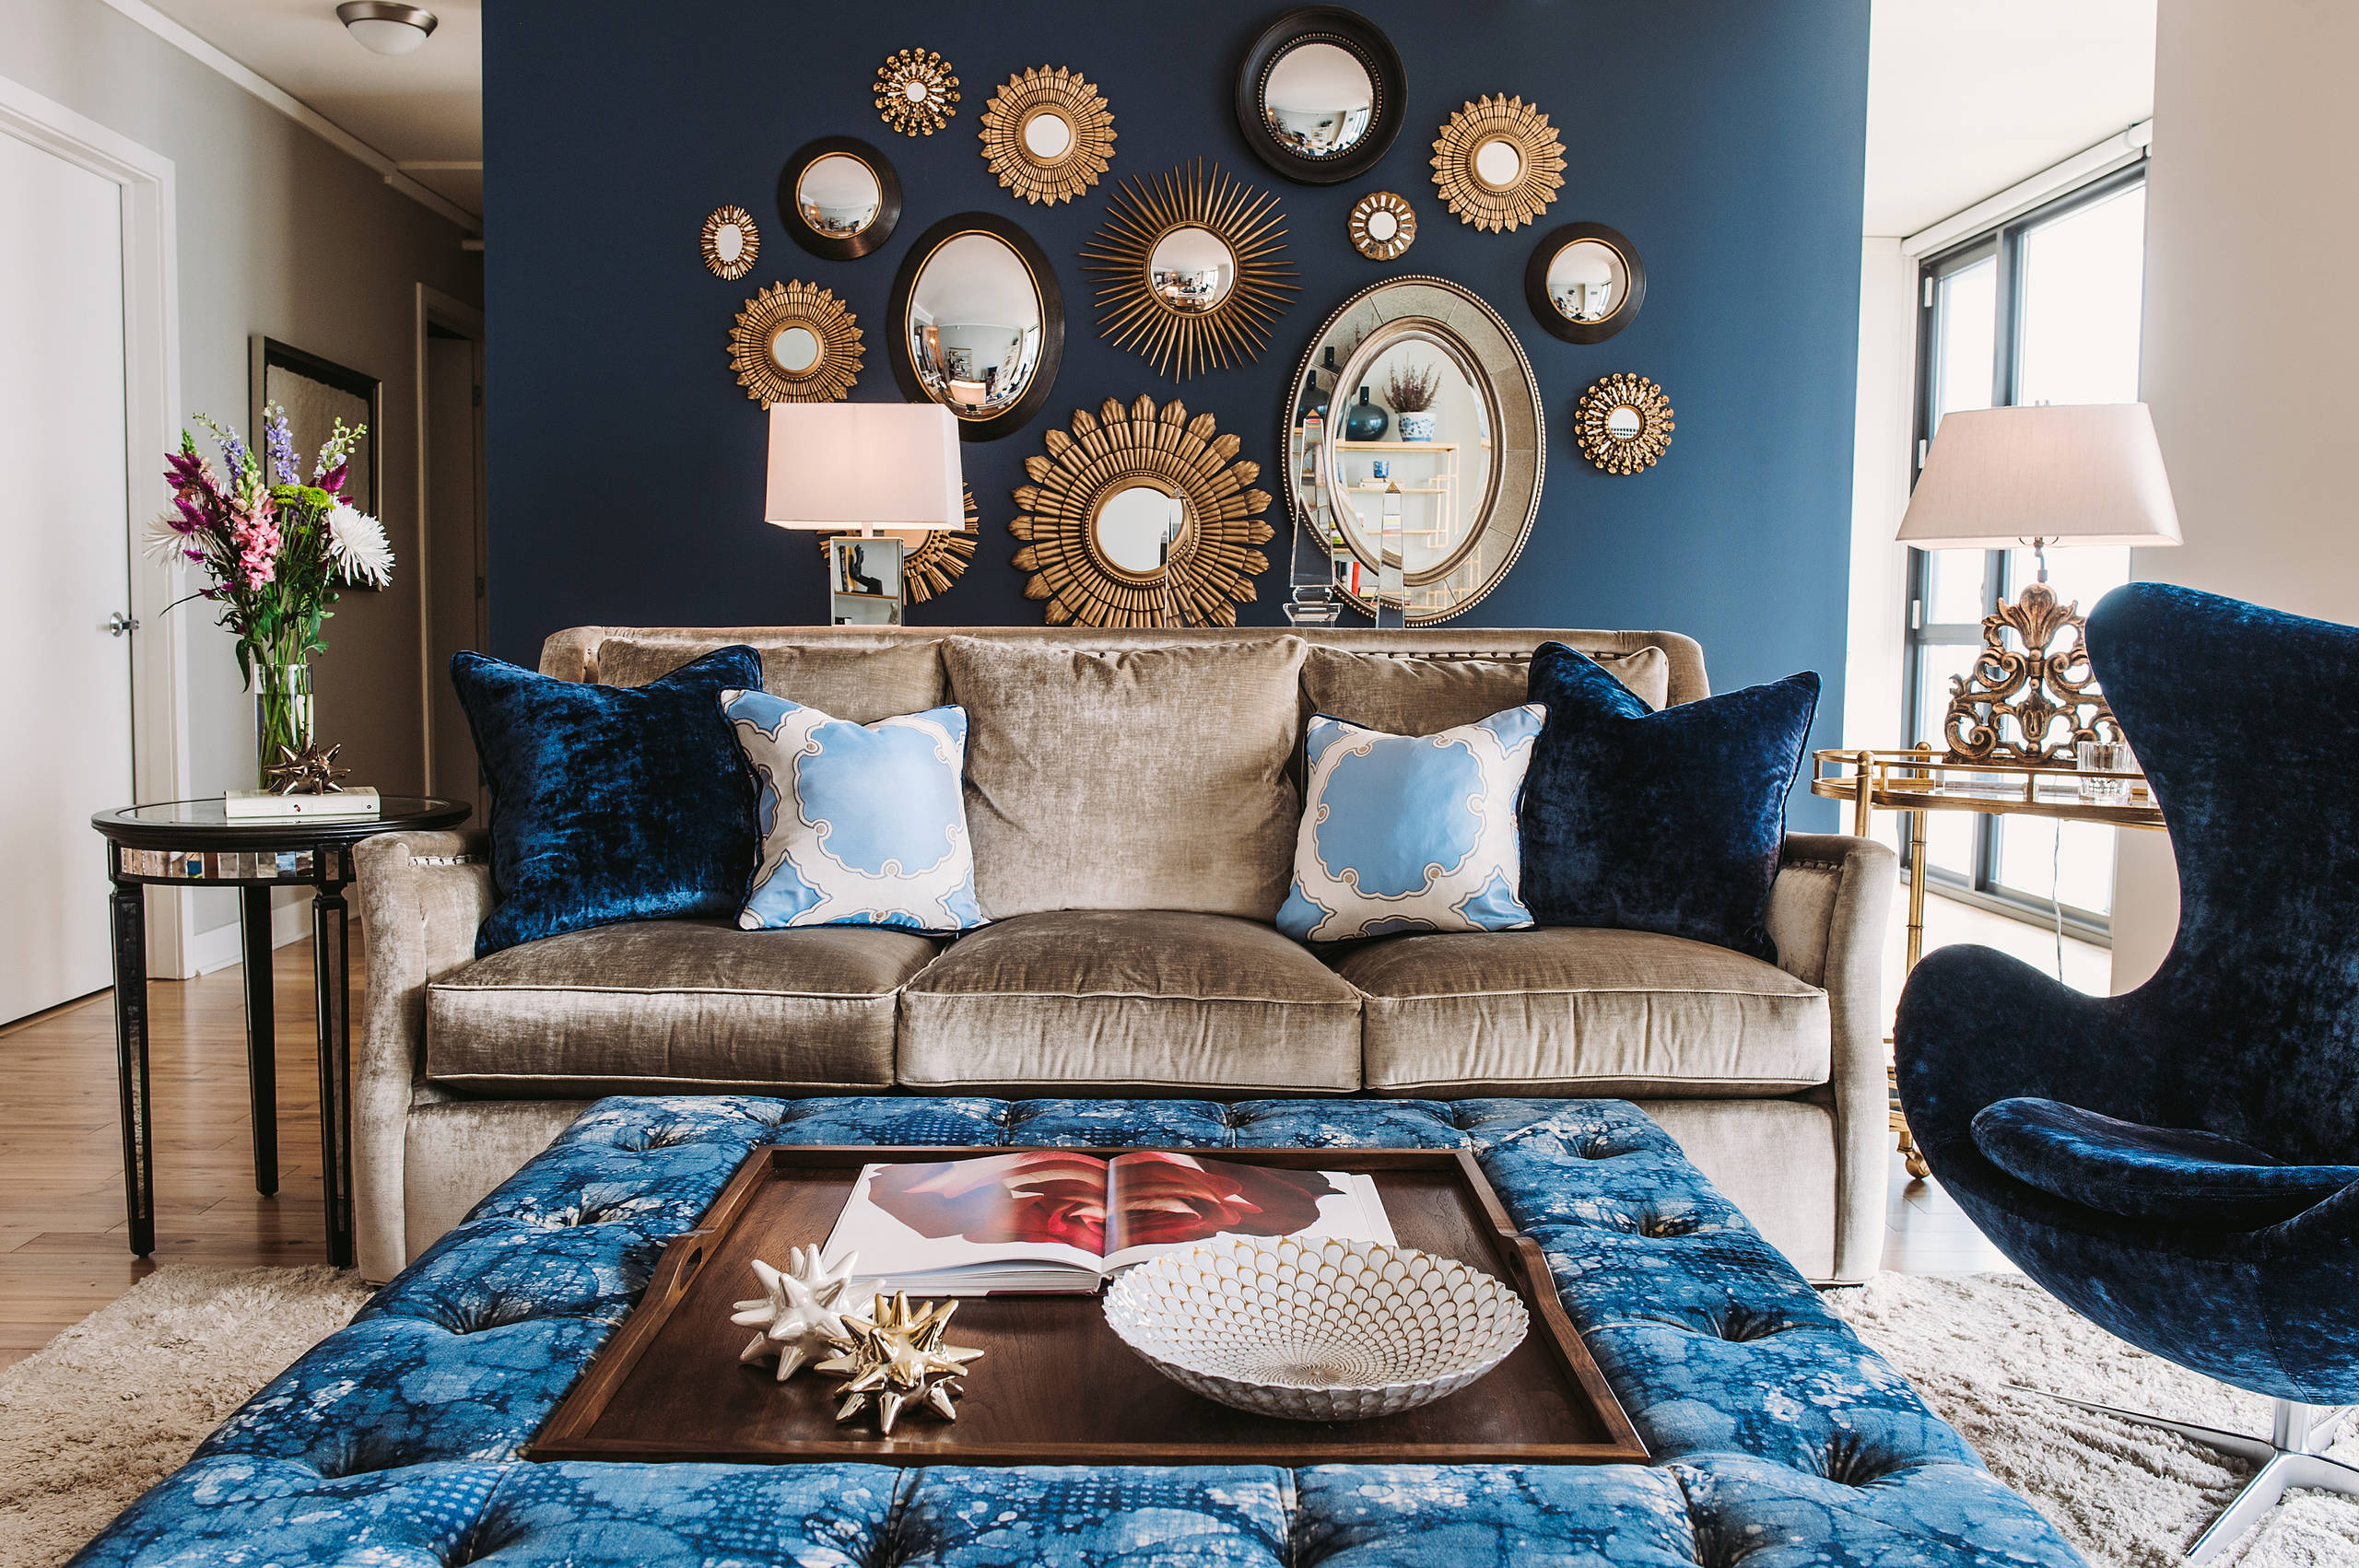 transitional-living-room inspiration condo ideas silver velvet navy blue cuch mirror gallery wall shop room ideas grouping pillow arrange